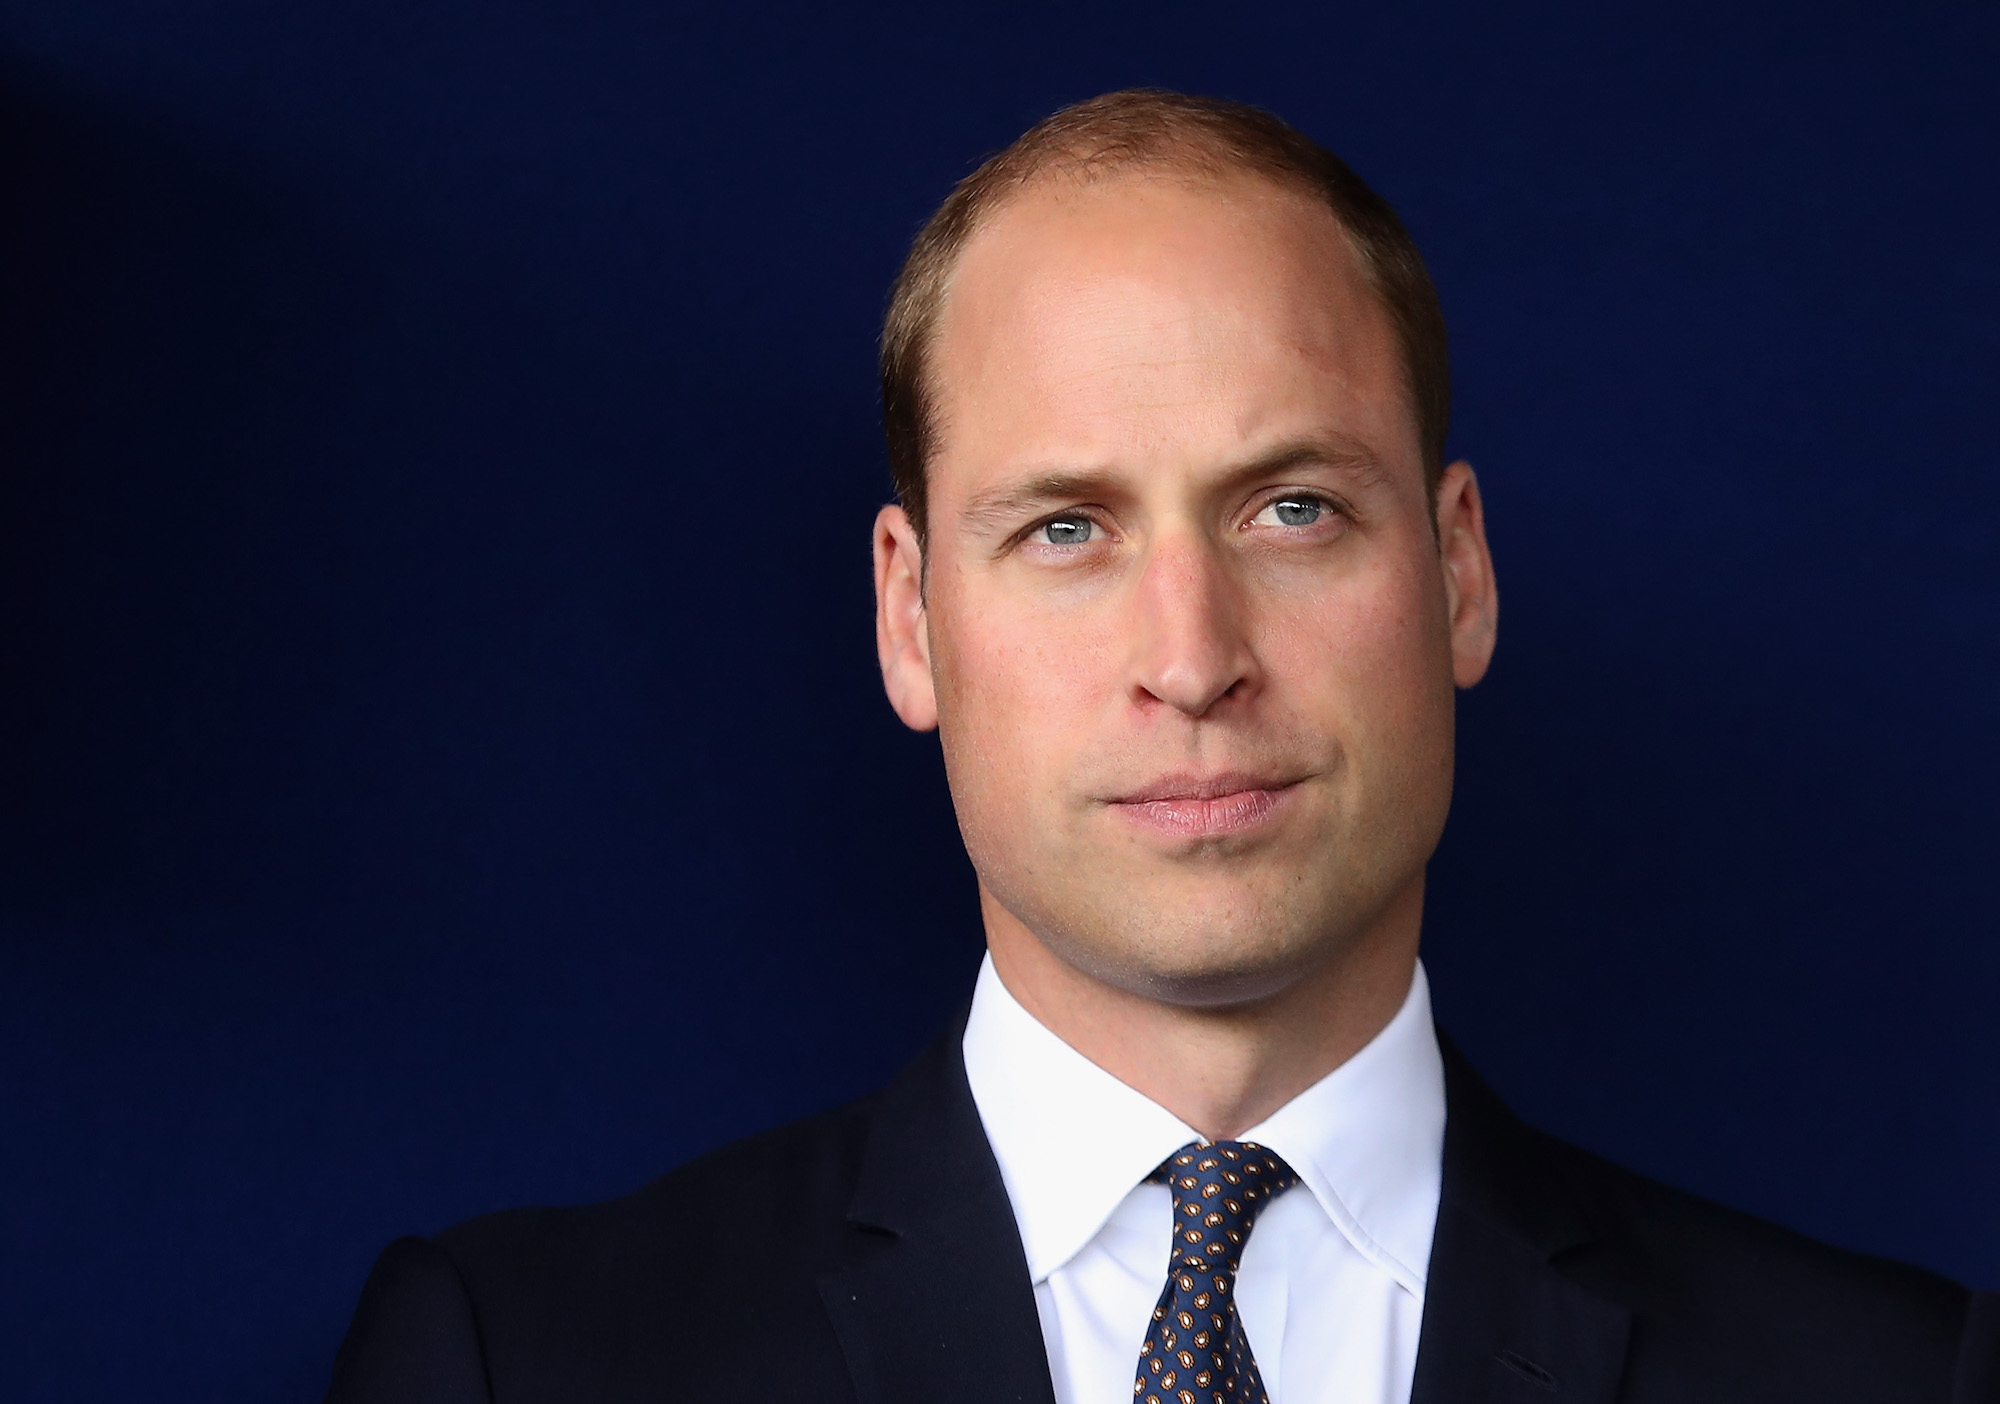 Prince William Healthcare workers Heroes Mental Health